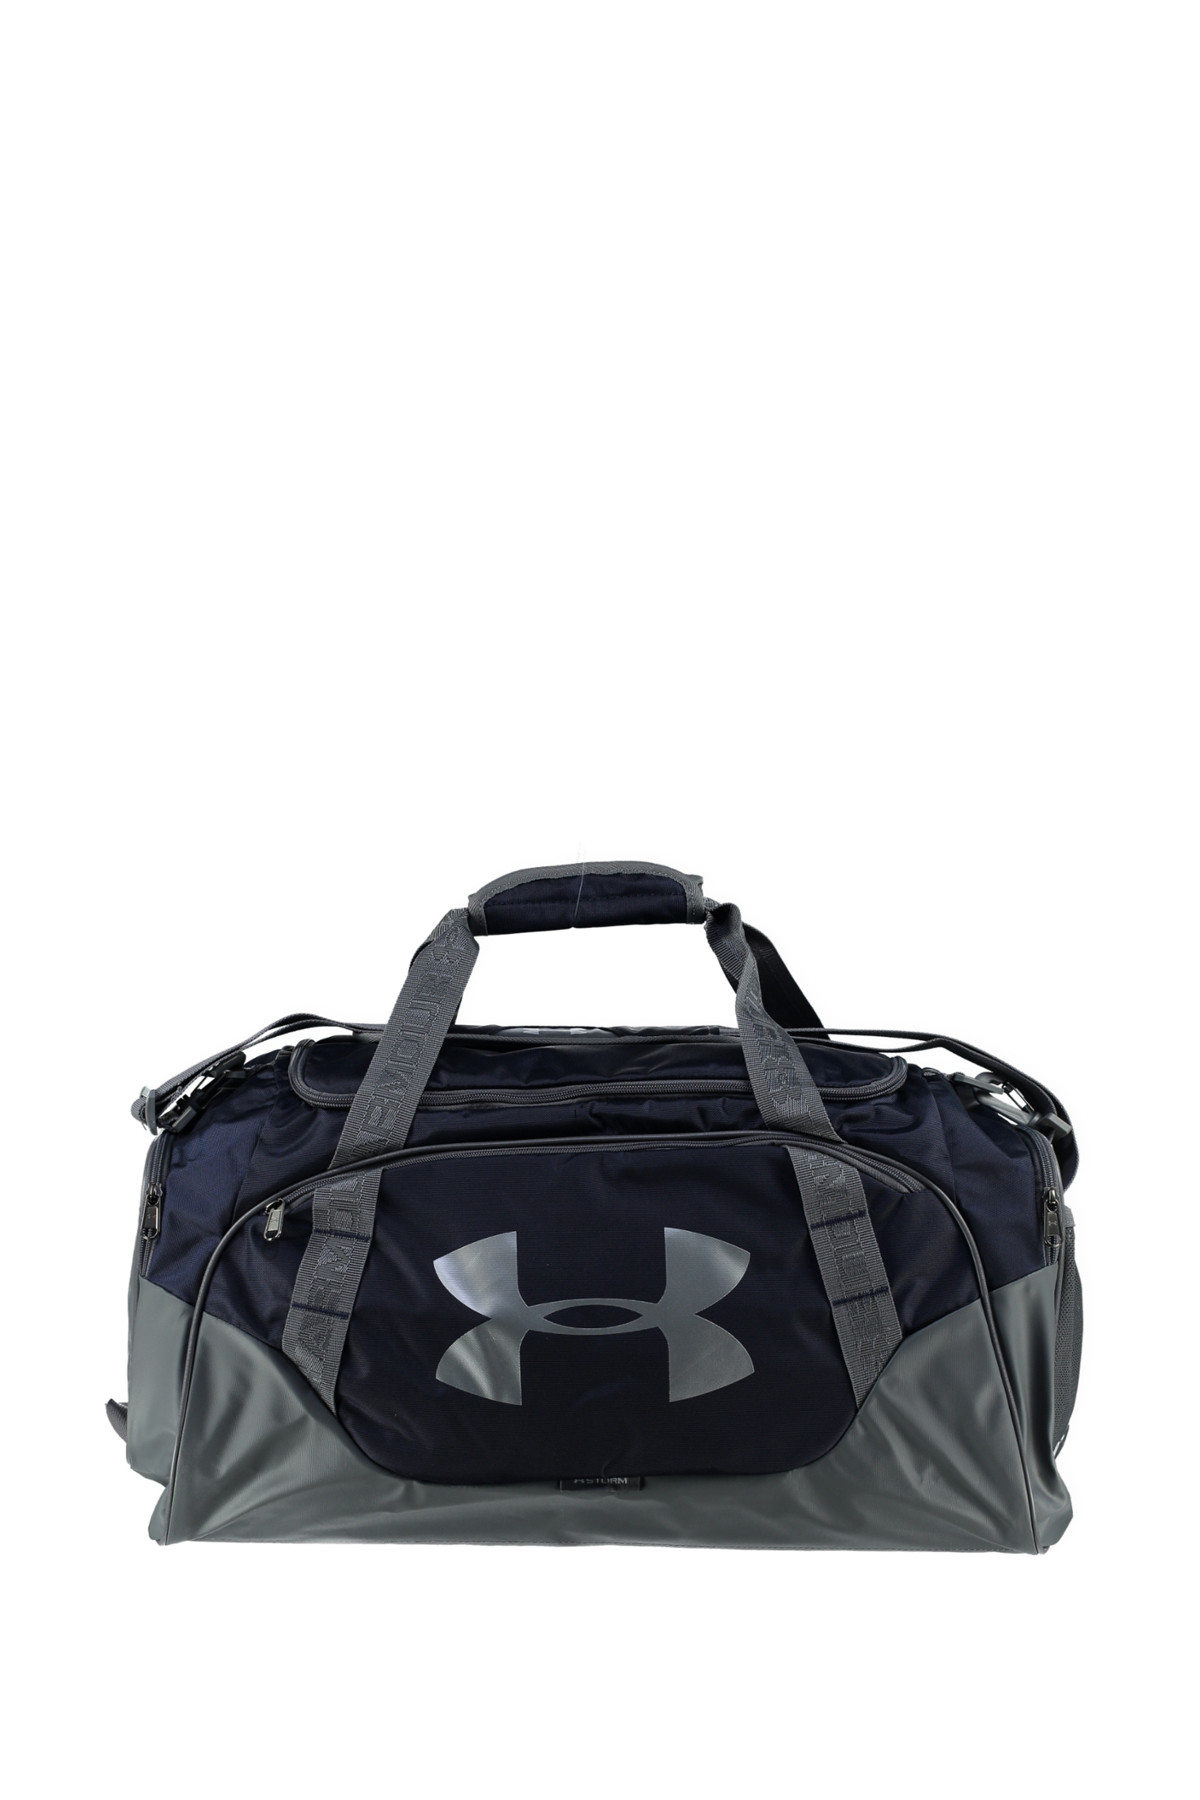 under armour unisex lacivert spor çanta - ua undeniable duffle 3.0 md -